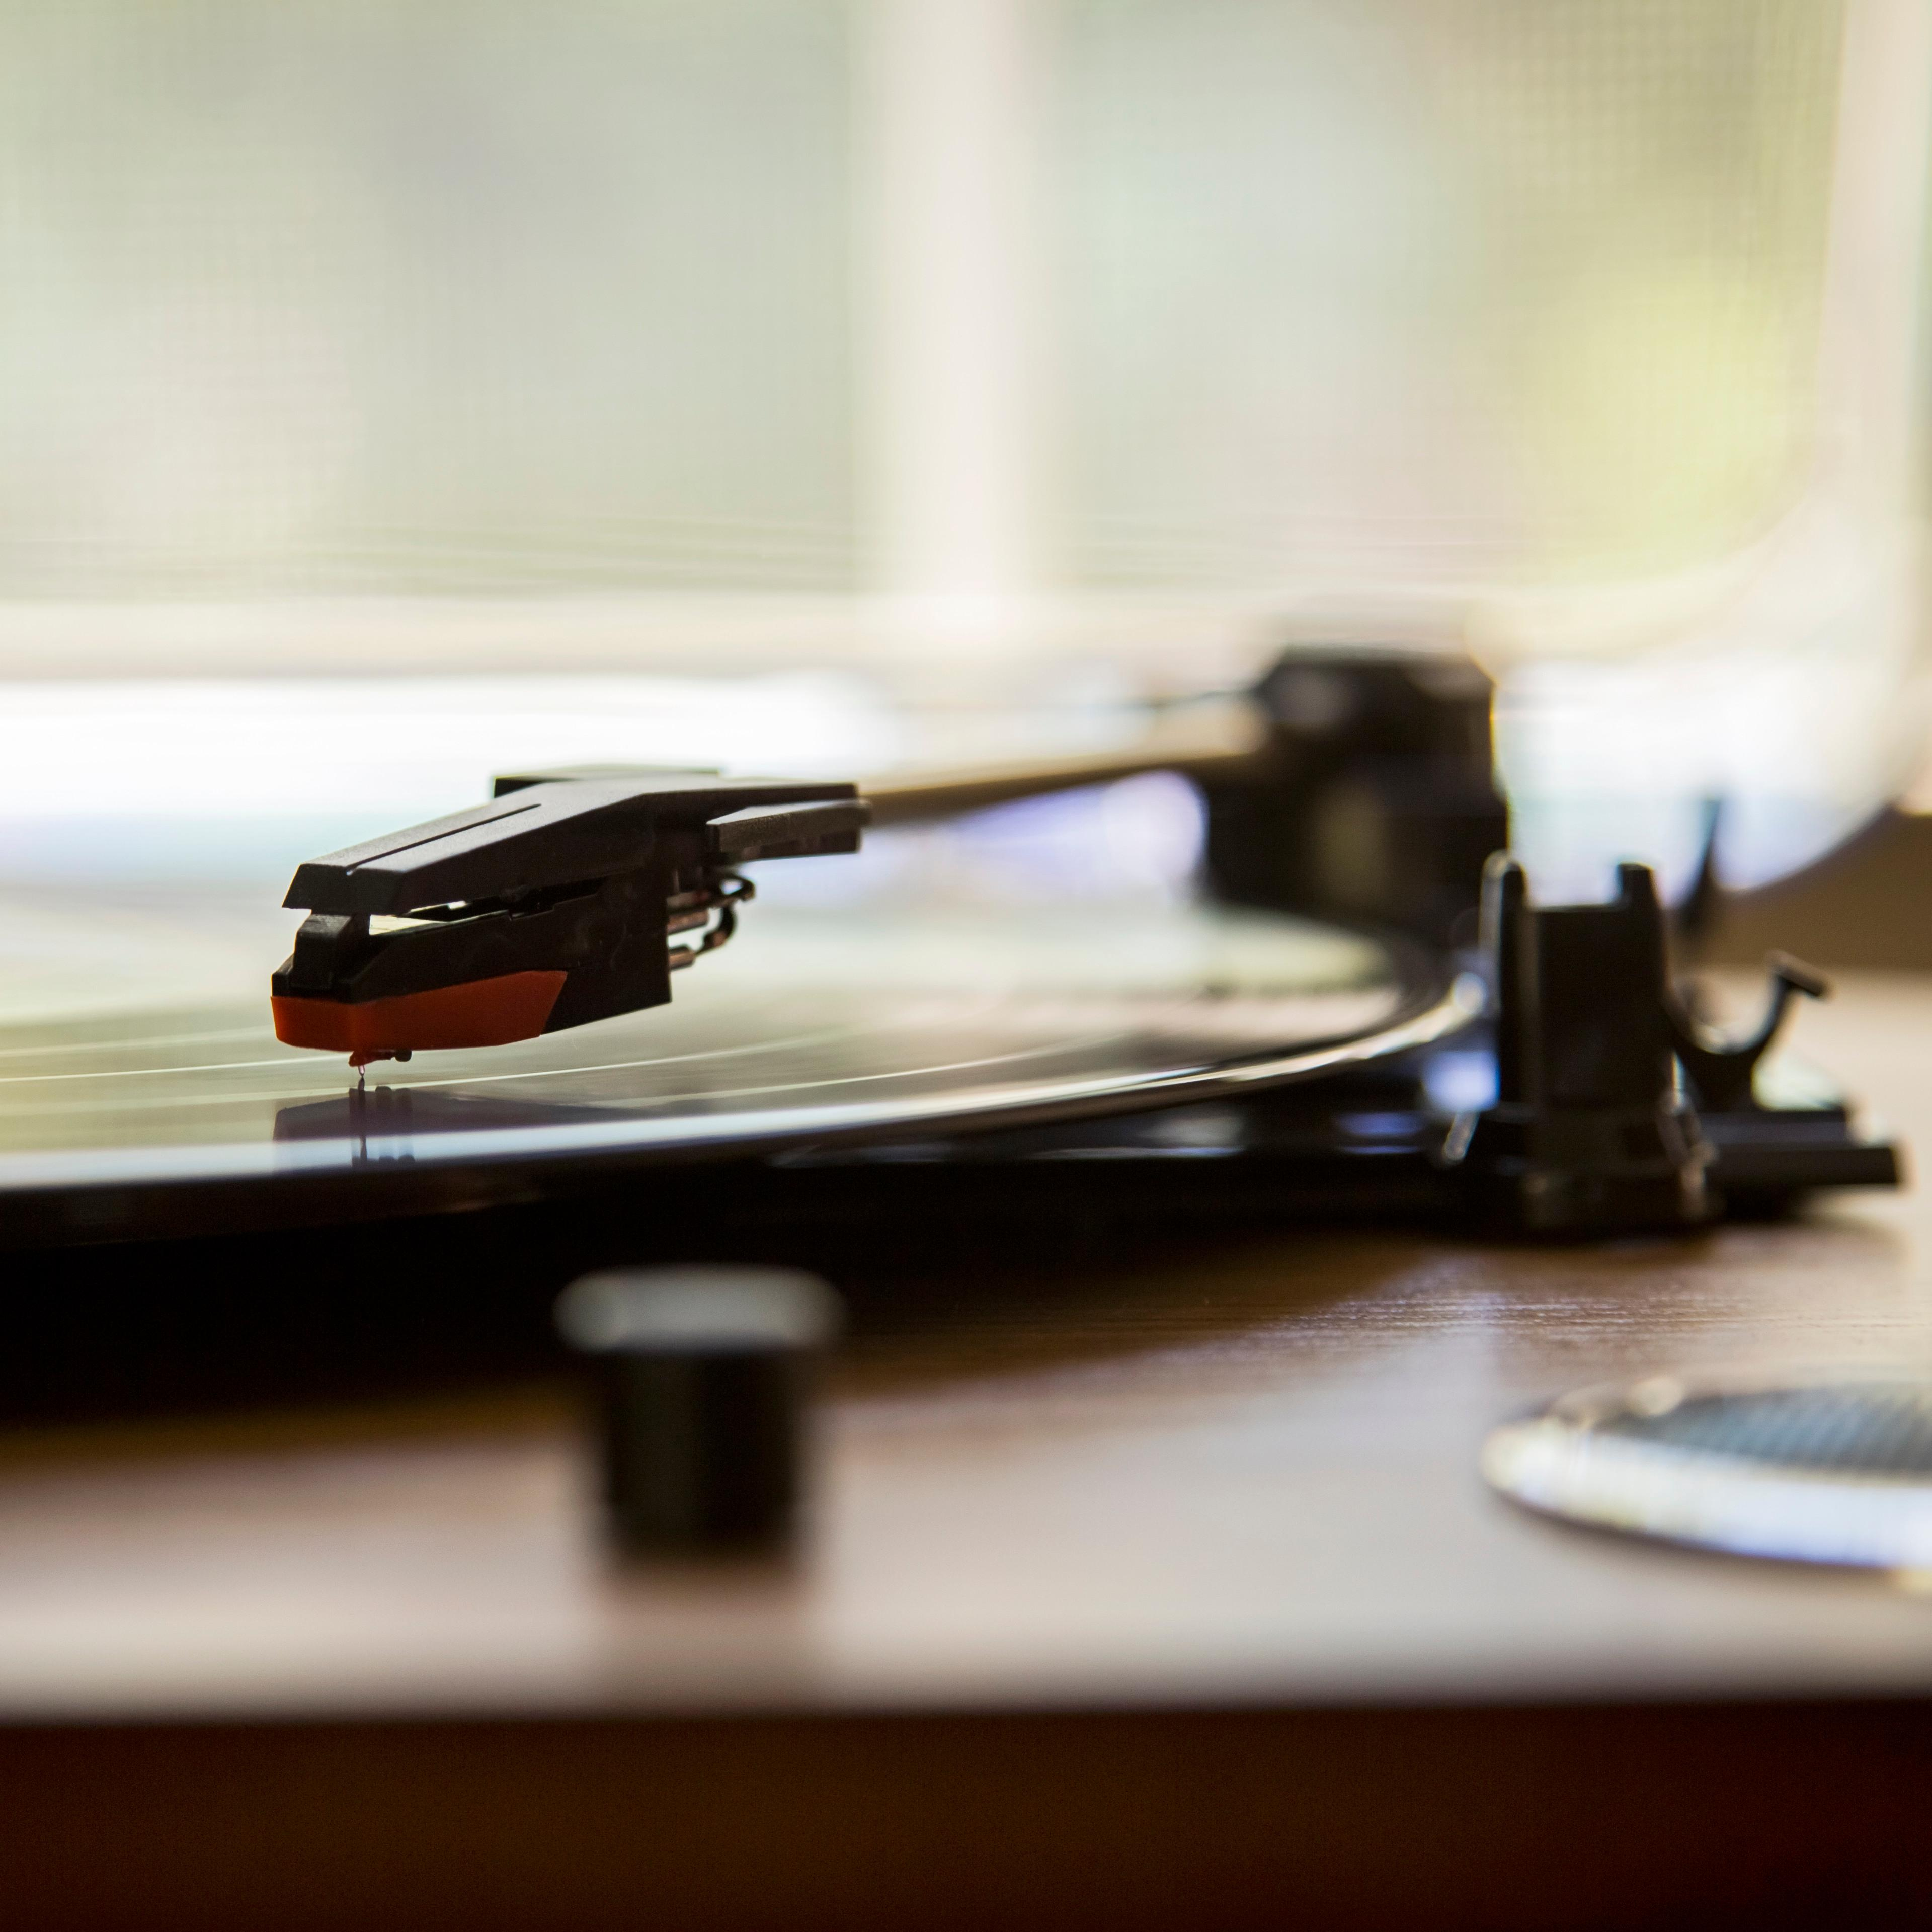 Amazon.com: ION Audio Max LP  3-Speed Belt Drive Turntable with Built